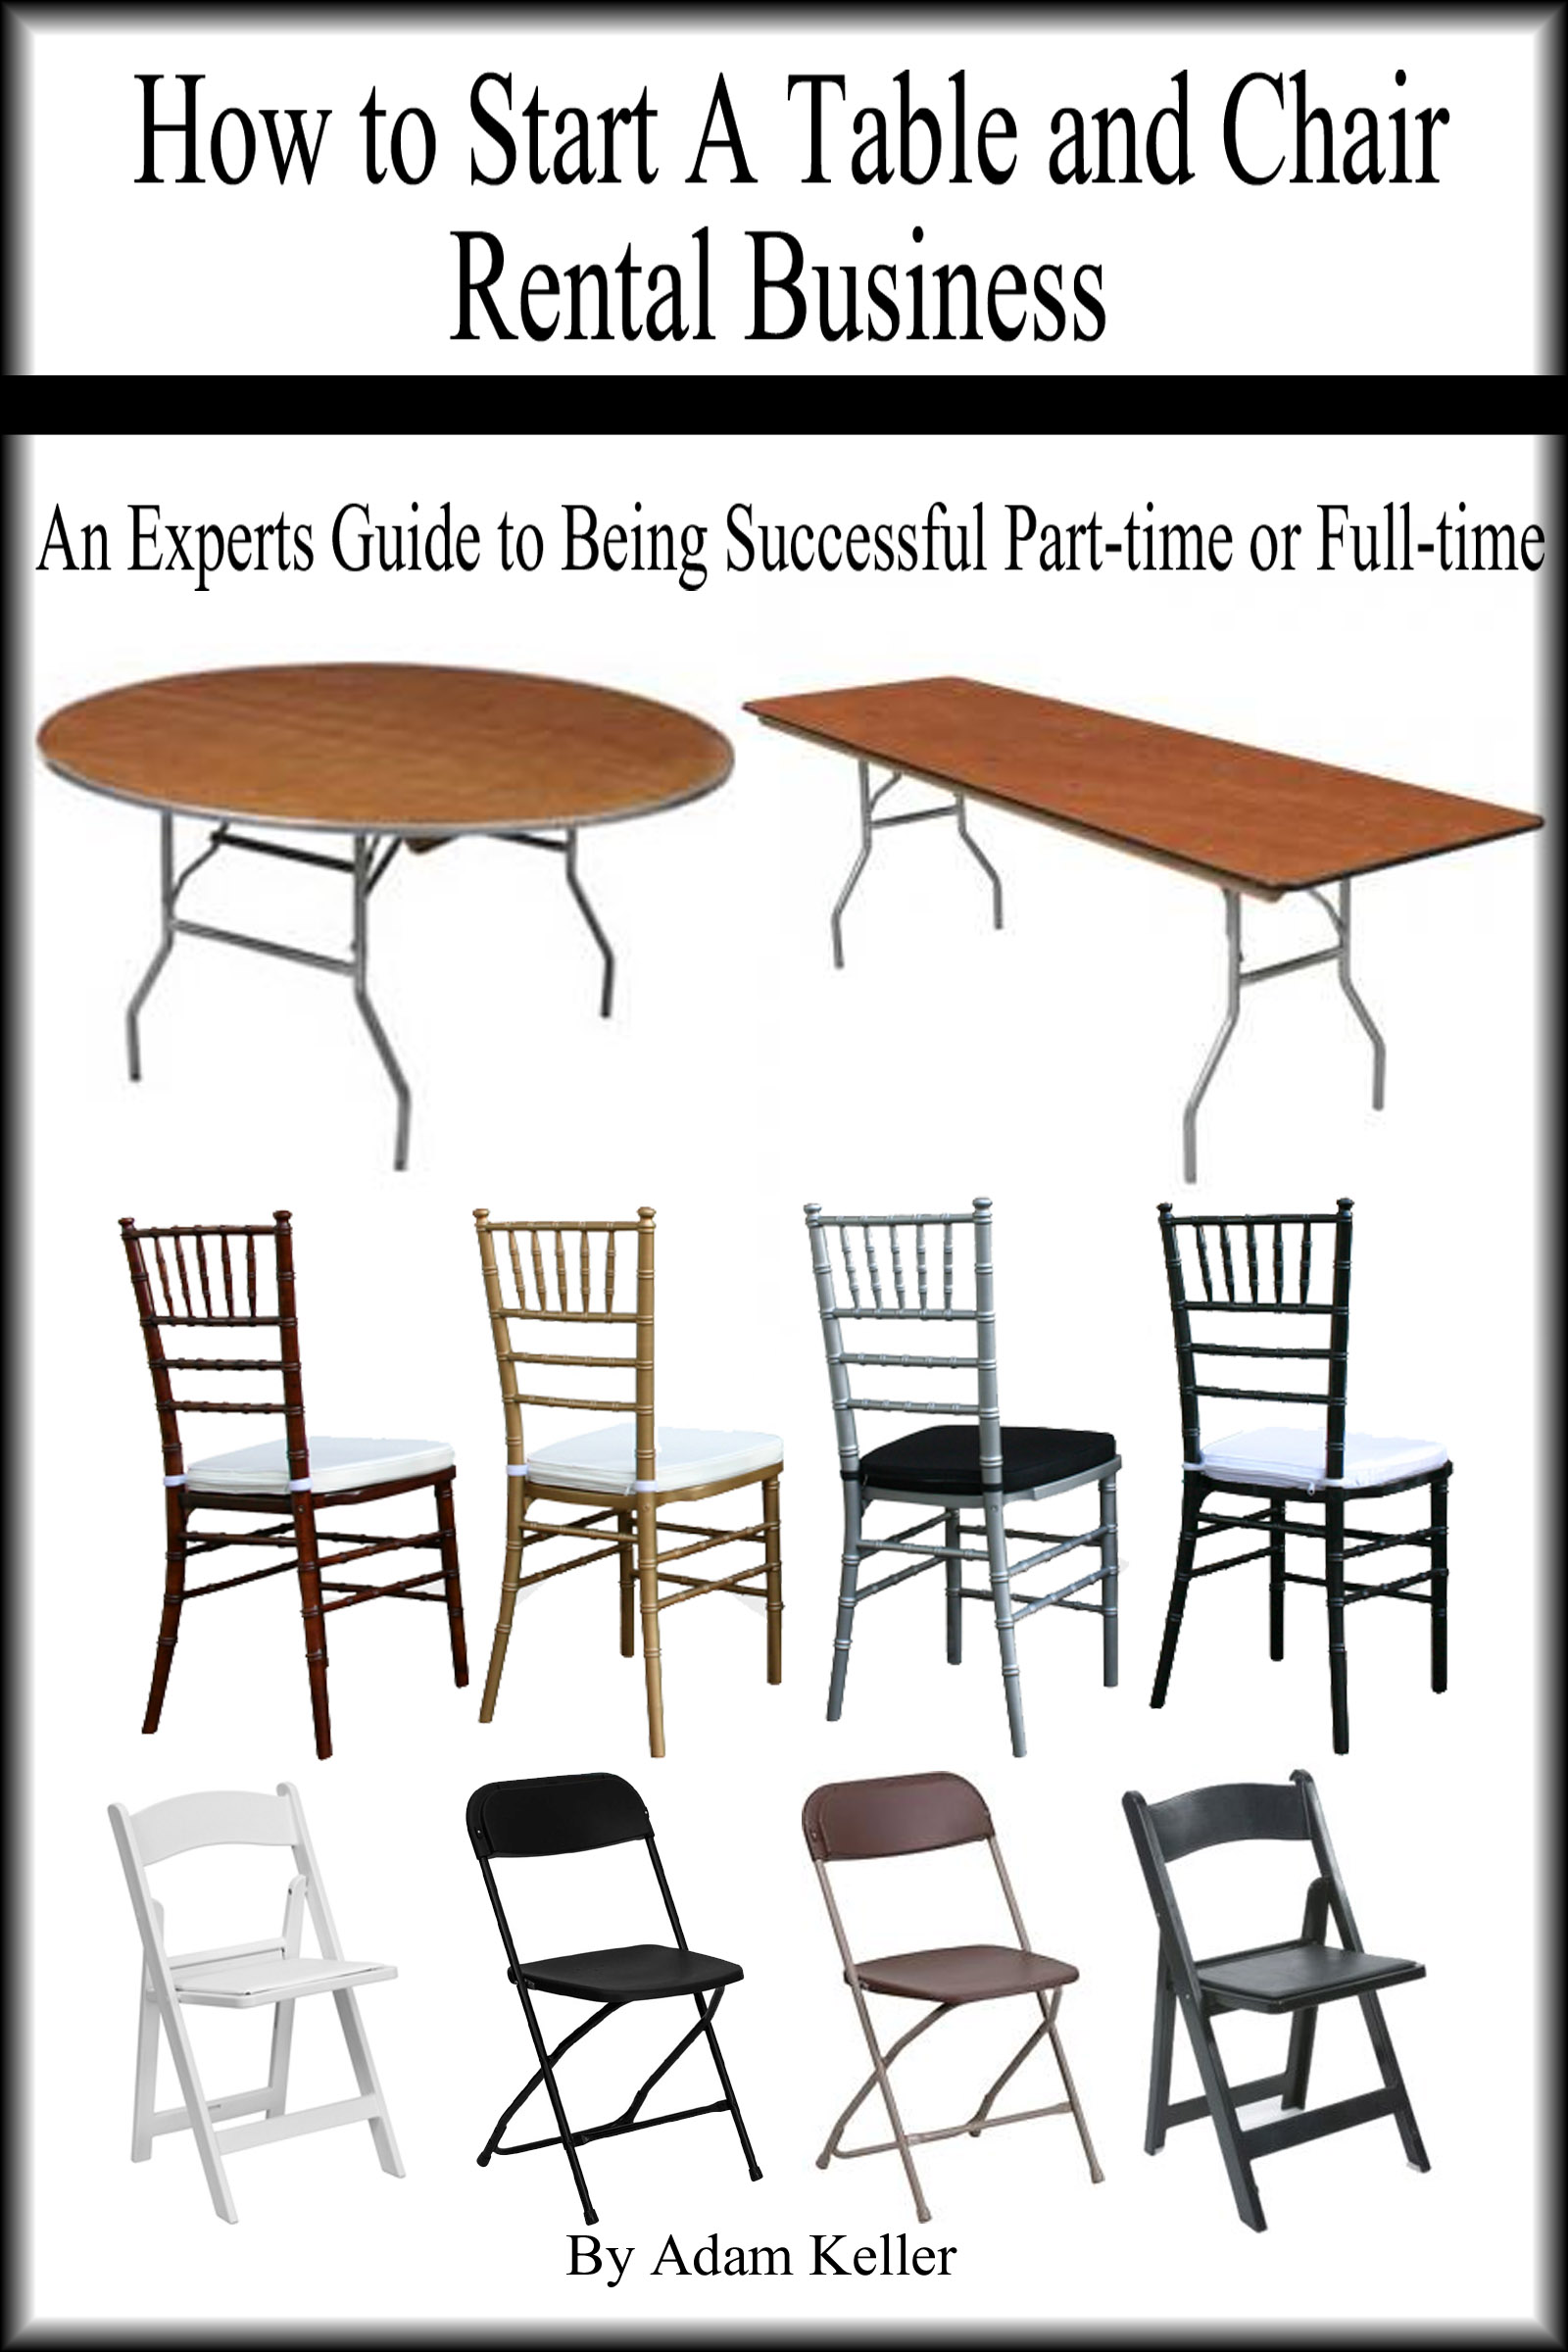 table and chair rentals lawn covers smashwords how to start a rental business an experts guide being successful part time or full